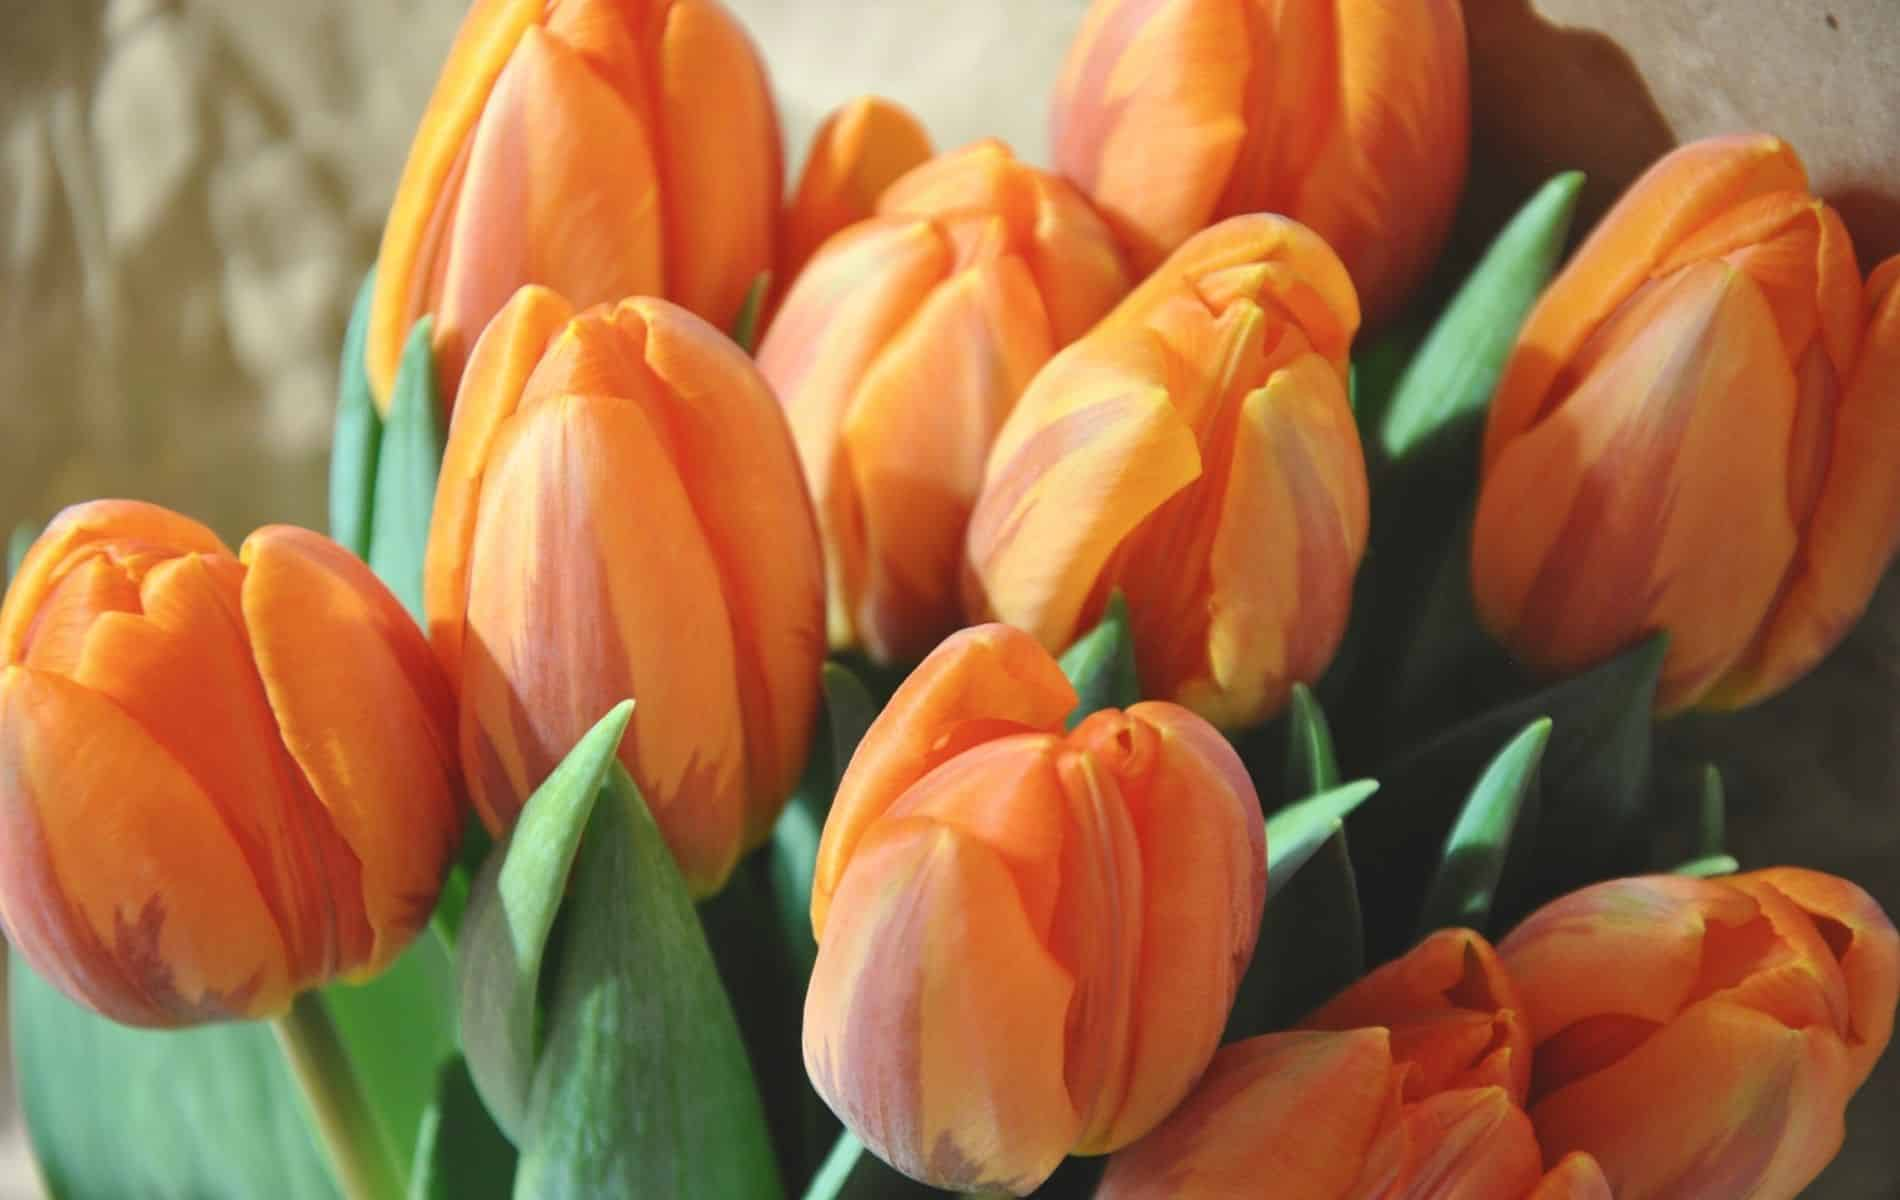 Are Tulips Edible